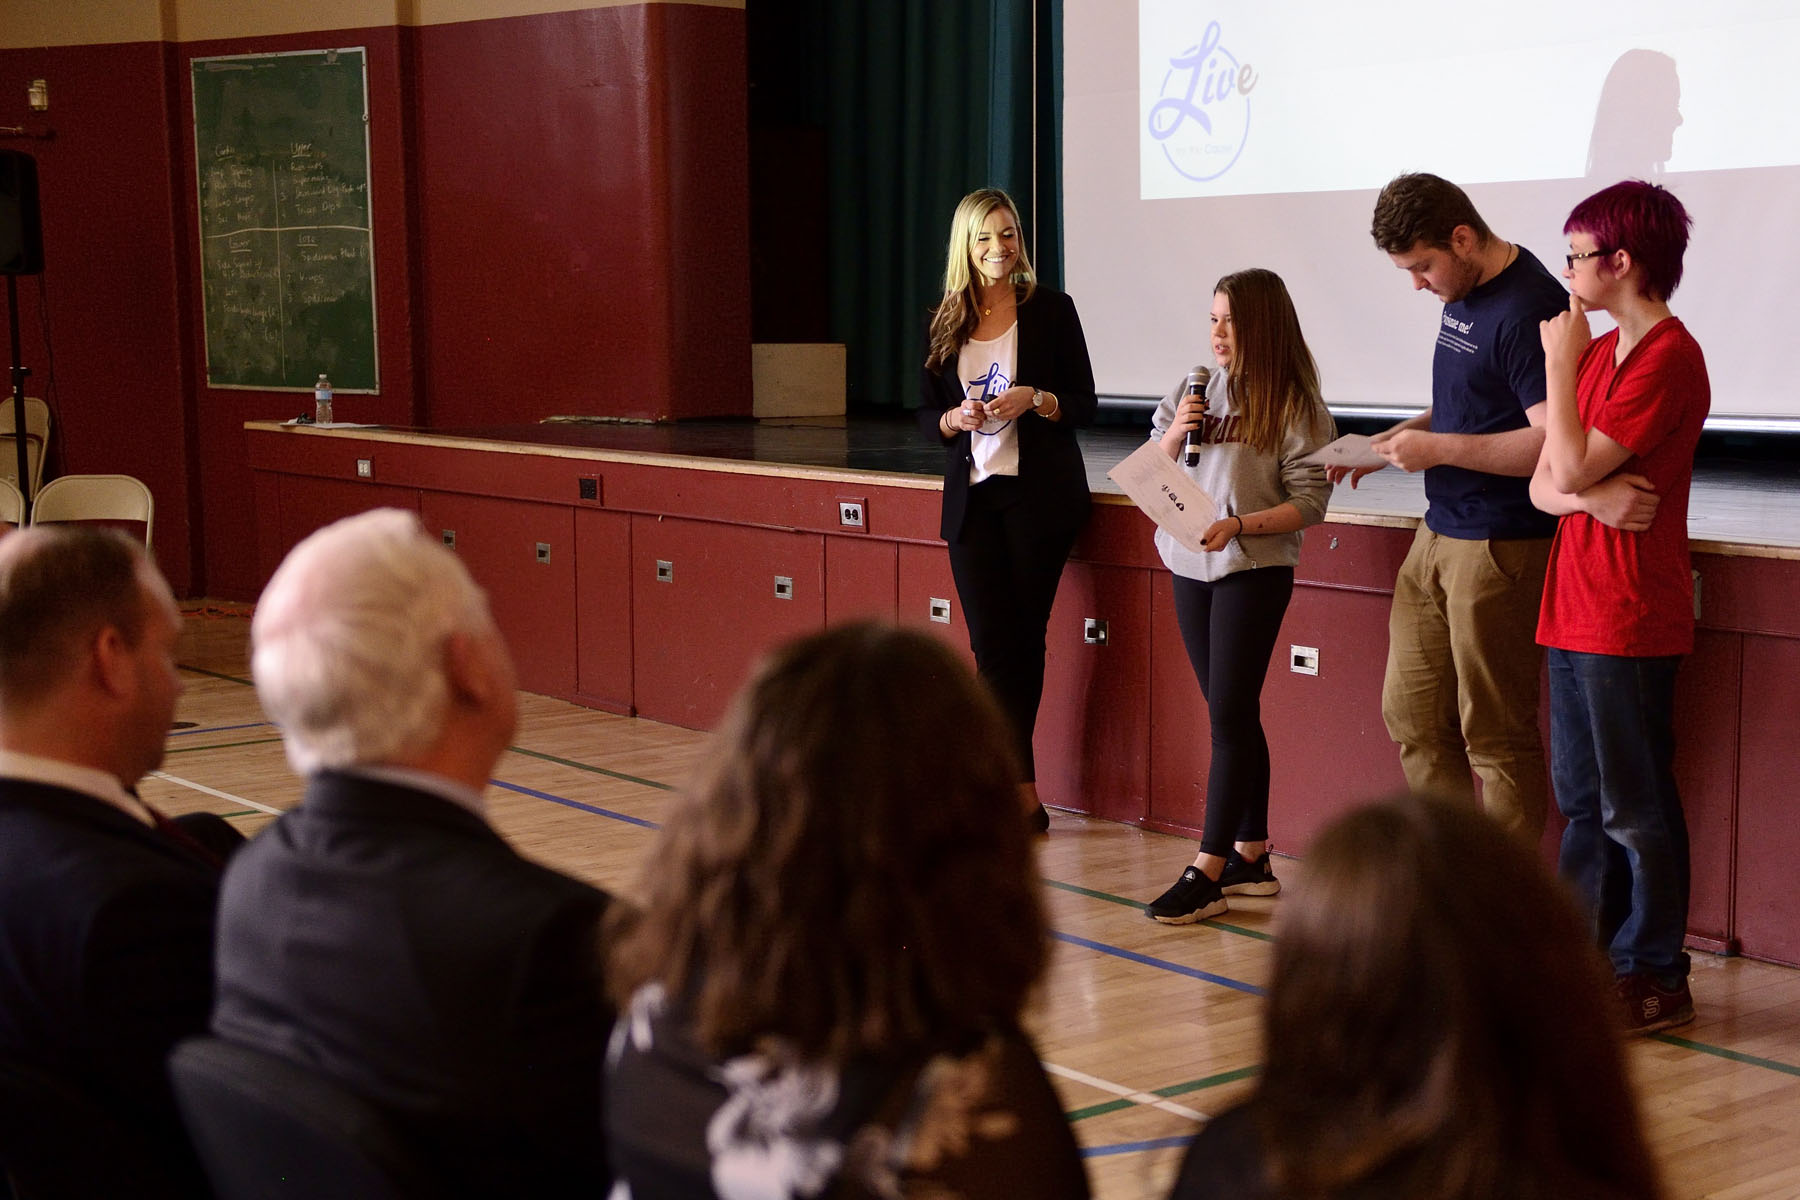 As part of the interactive presentation, several students presented their ideas for a community event to their peers, teachers, representatives from the school board and the Governor General.